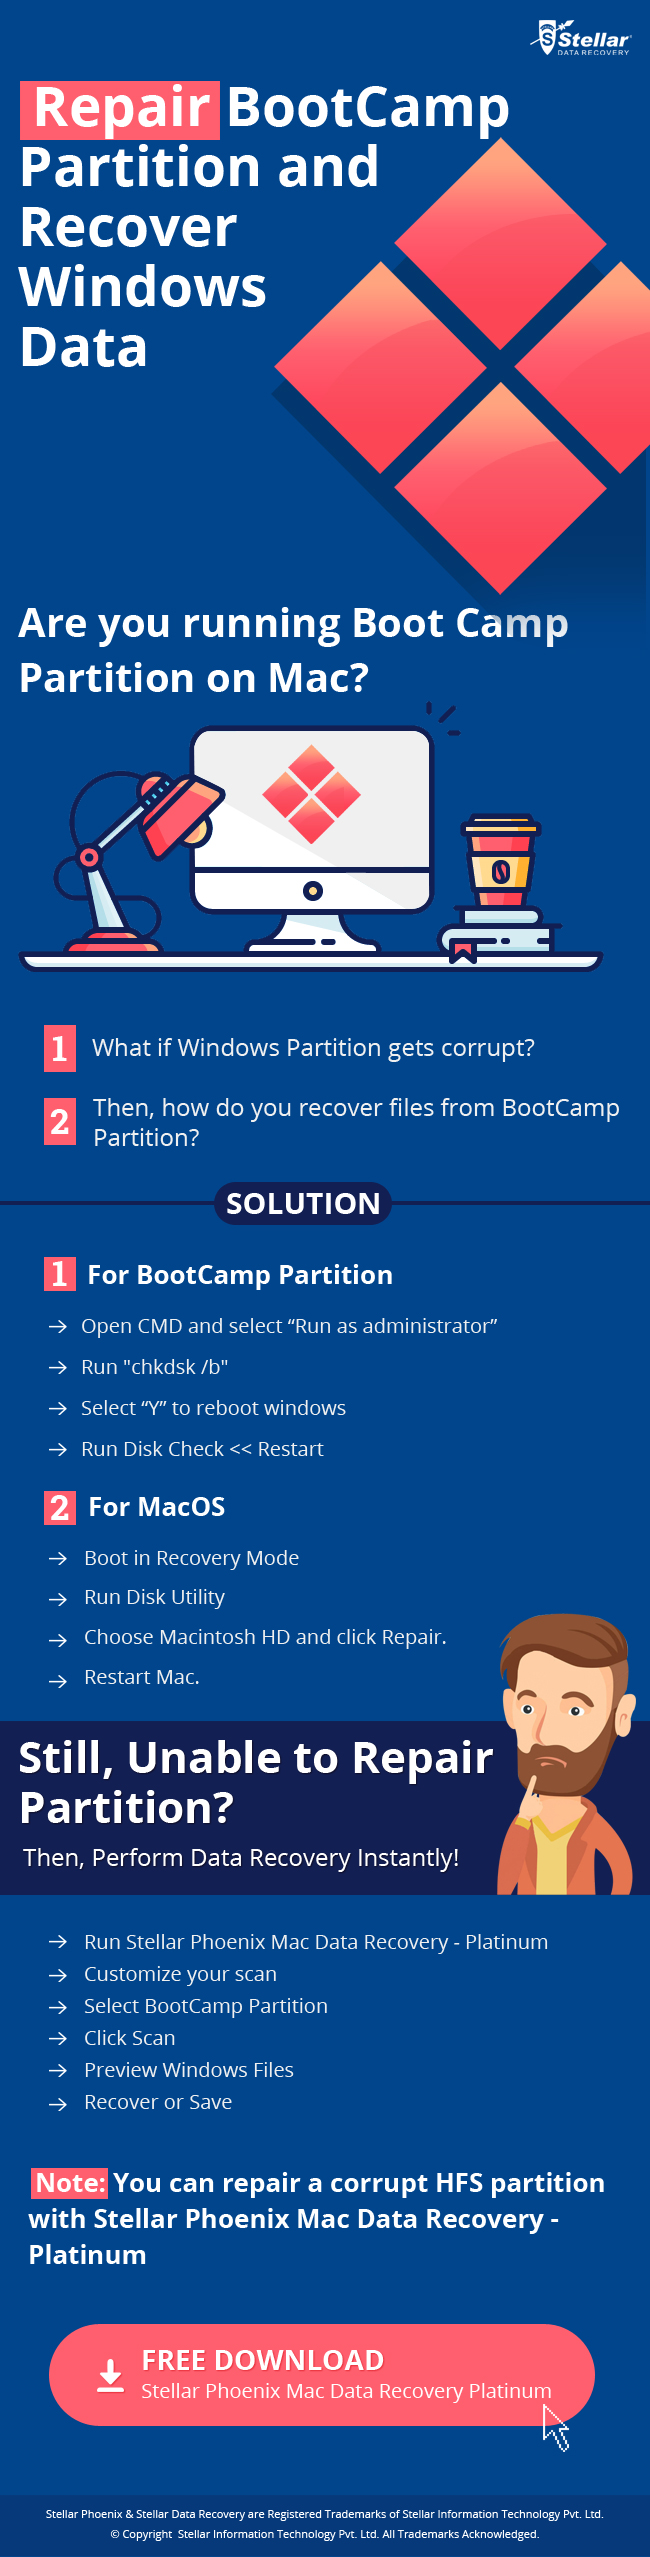 repair tool for windows 10